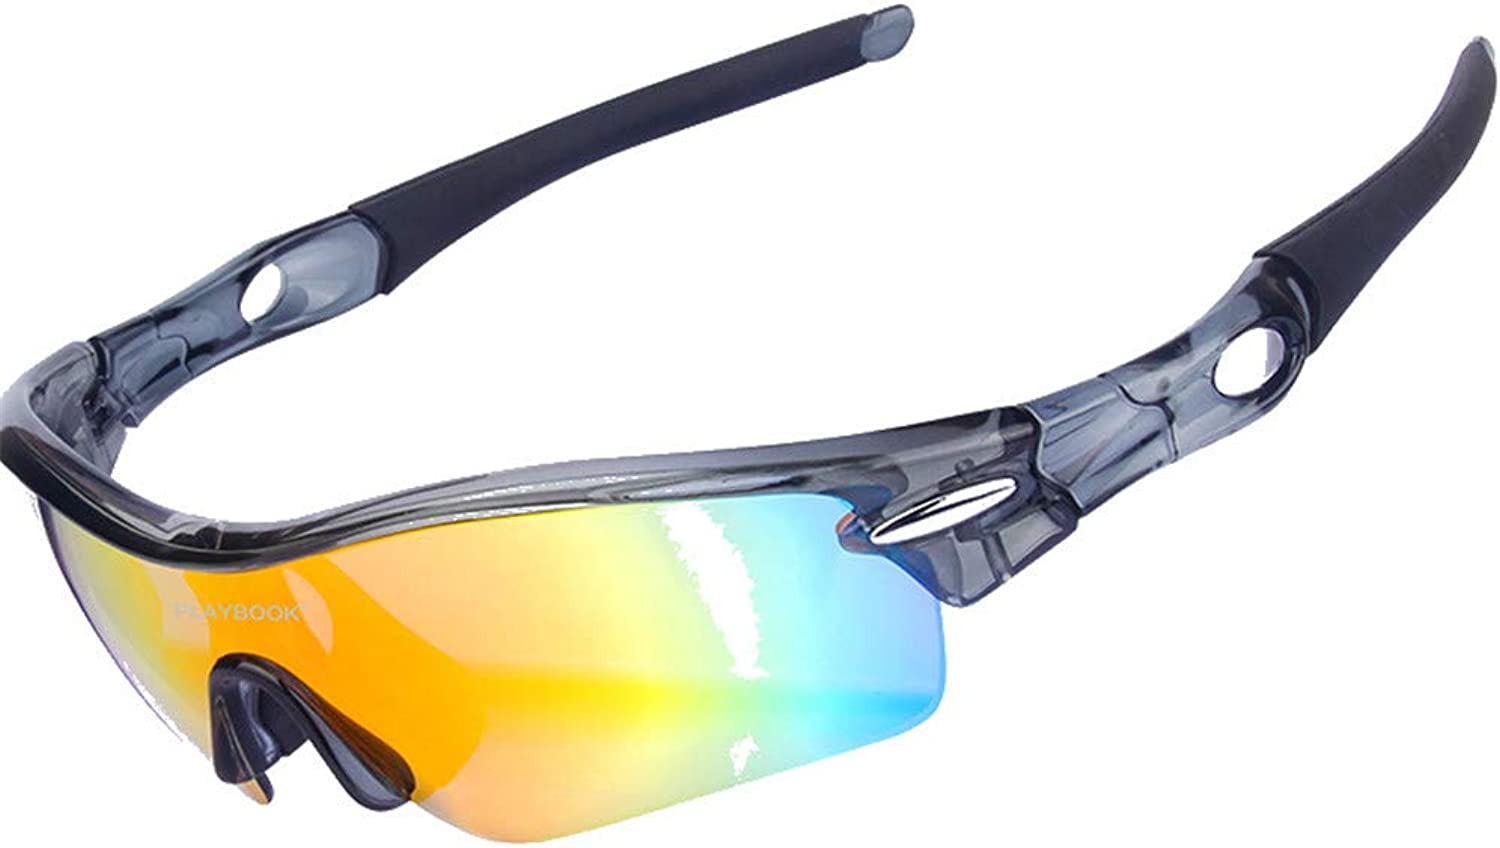 Cycling Glasses Men's Female Sports Sunglasses Predected Riding Glasses for Cycling, Baseball, Fishing, Ski Running, Sports Sunglasses Predection Cycling Sports Sunglasses